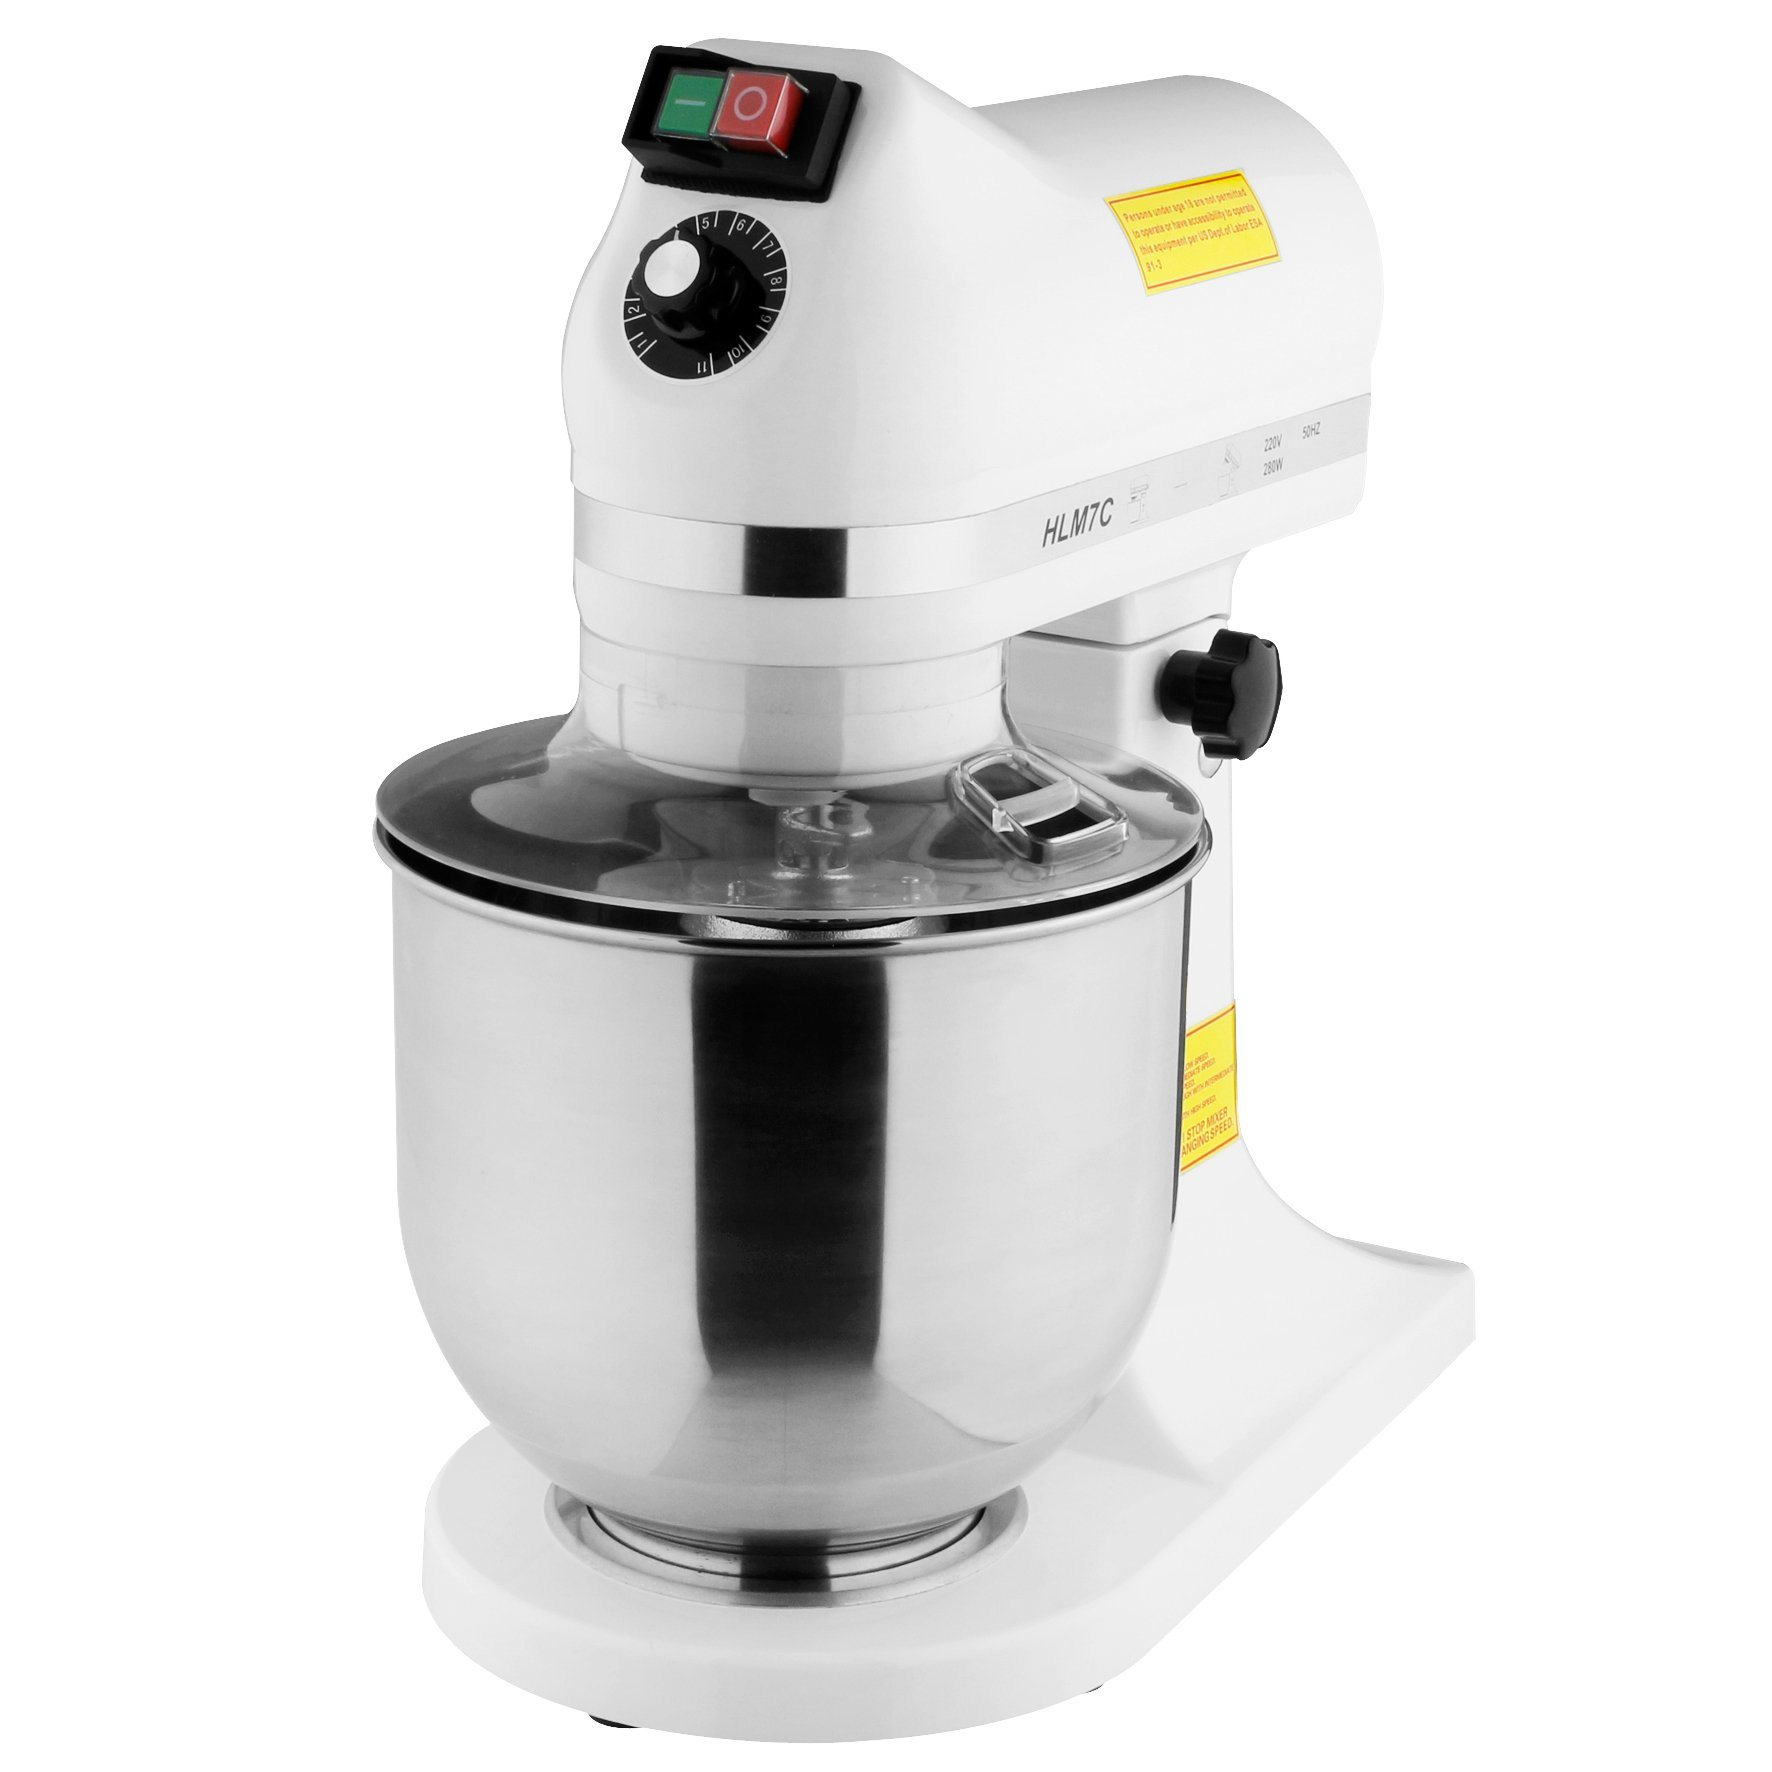 ETL Ce Approval Planetary Food Cake Mixer